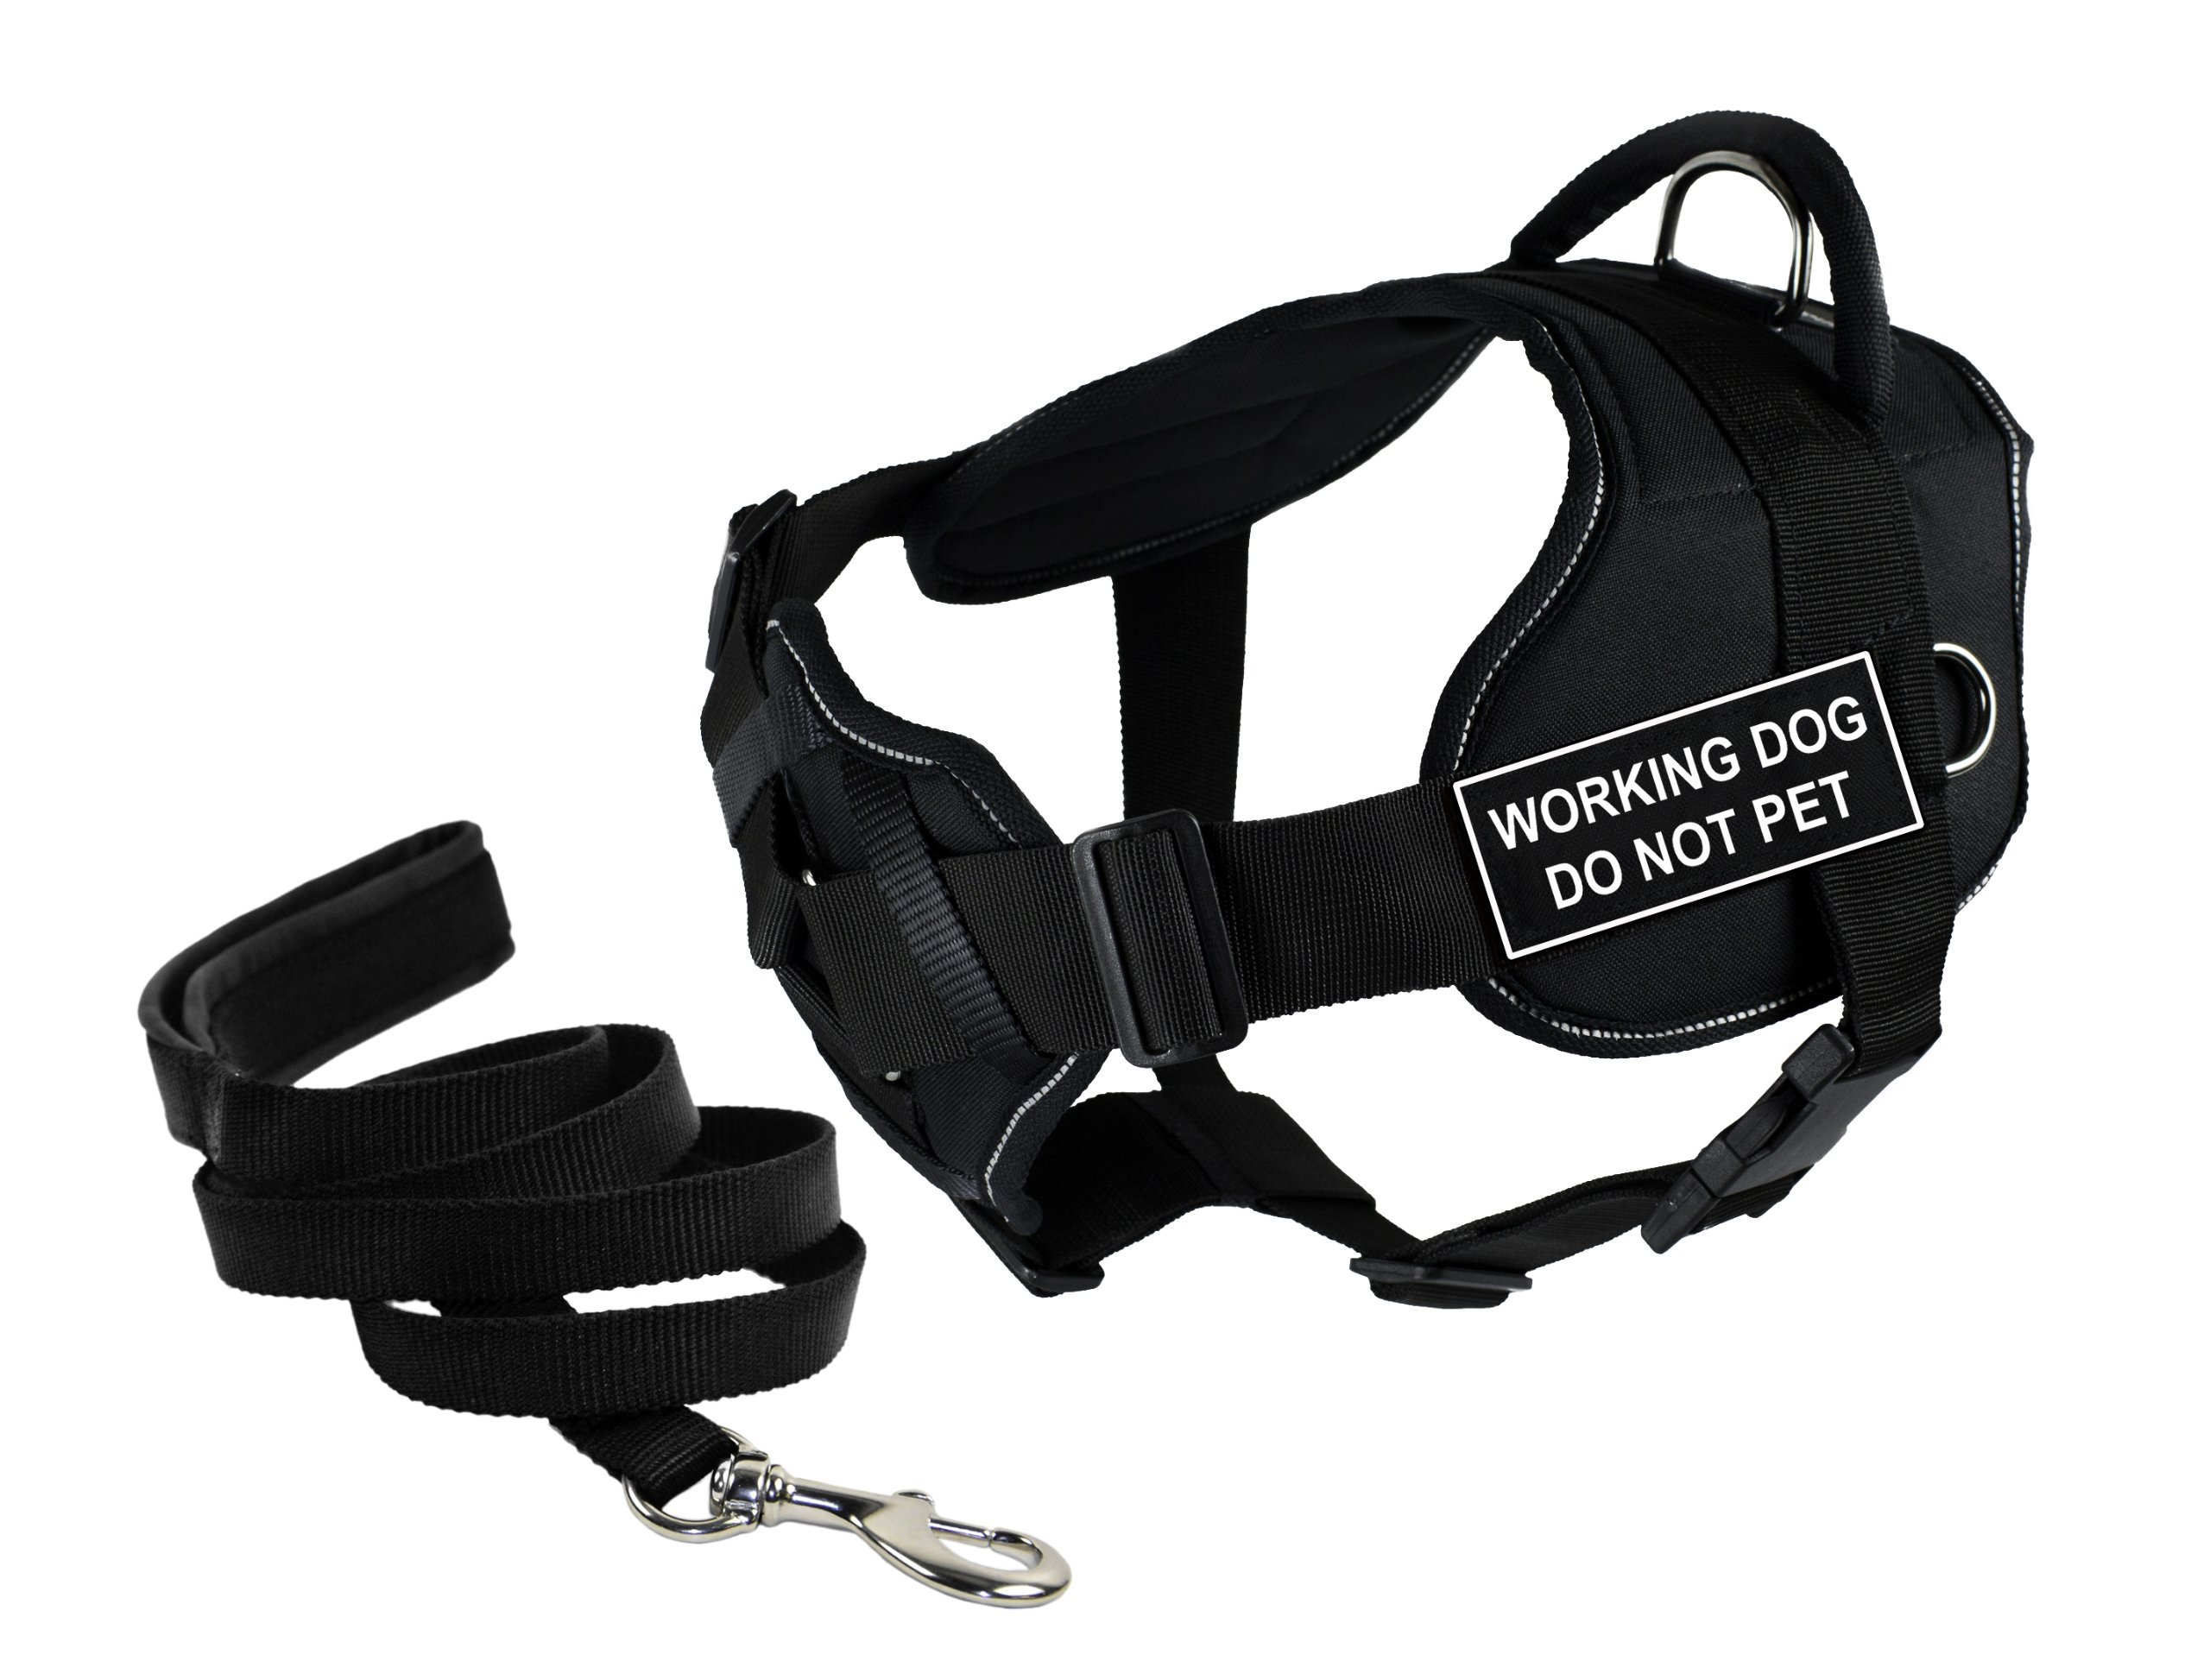 Dean & Tyler's DT Fun Chest Support ''WORKING DOG DO NOT PET'' Harness with Reflective Trim, Large, and 6 ft Padded Puppy Leash. by Dean & Tyler (Image #1)